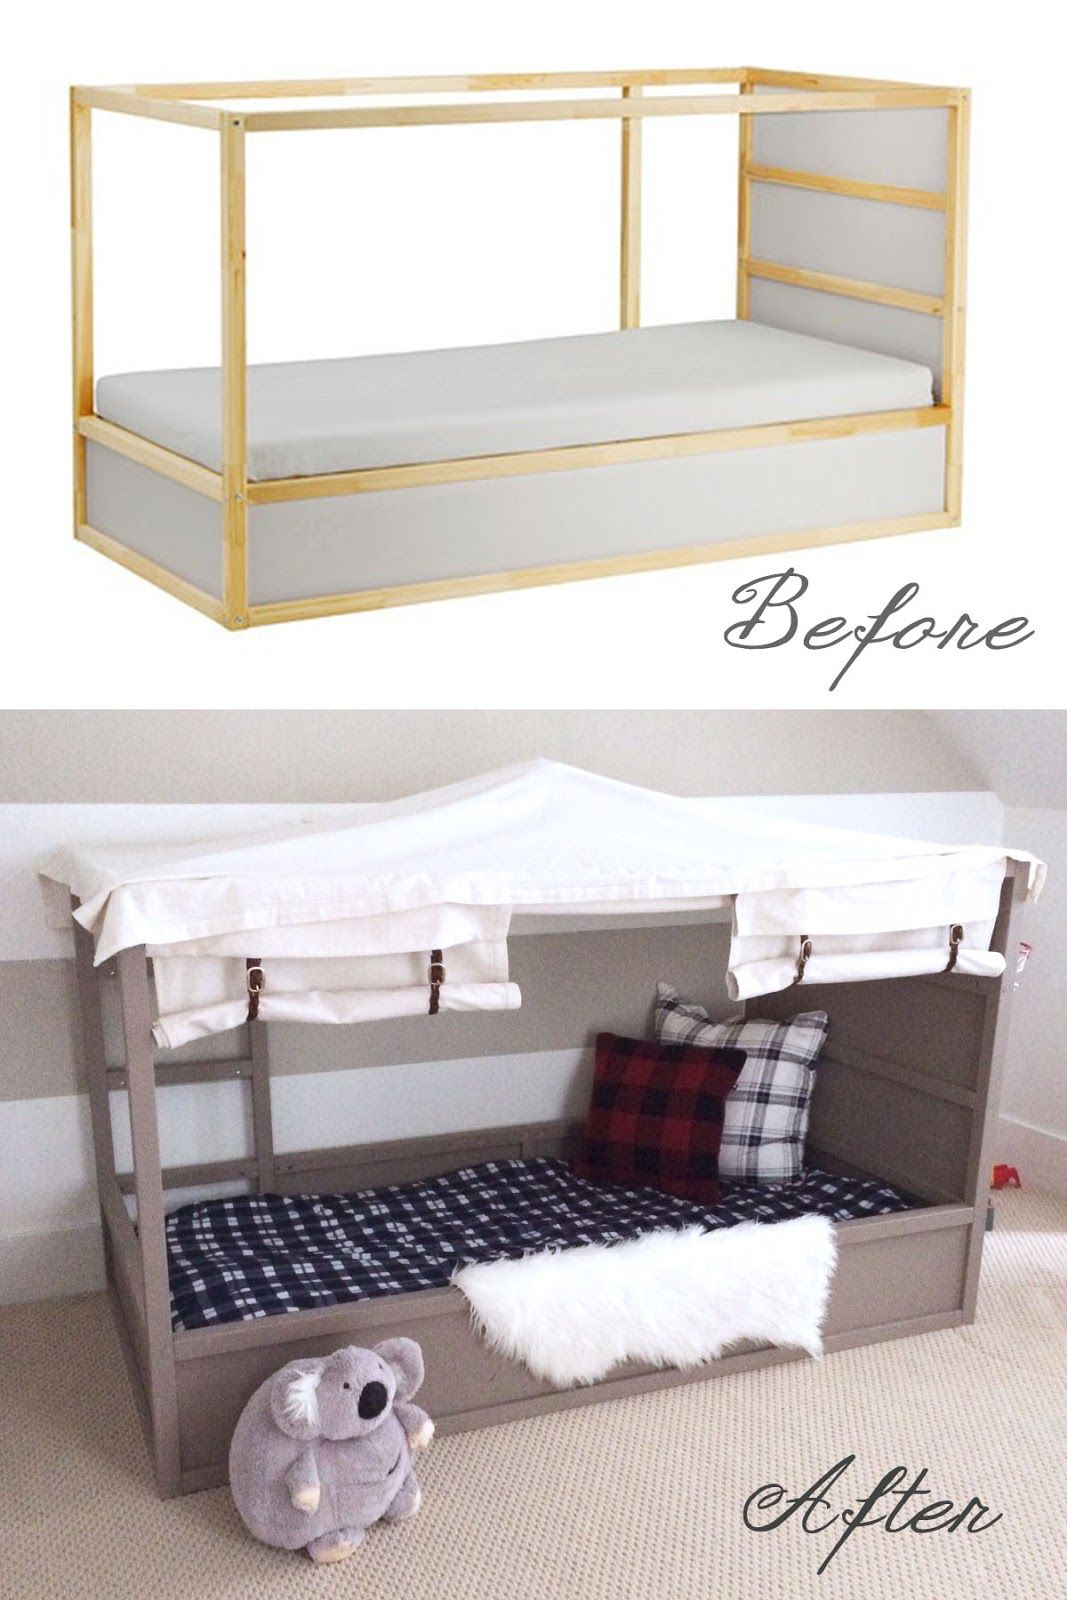 Harlow Thistle Home Design Lifestyle Diy Ikea Kura Bed